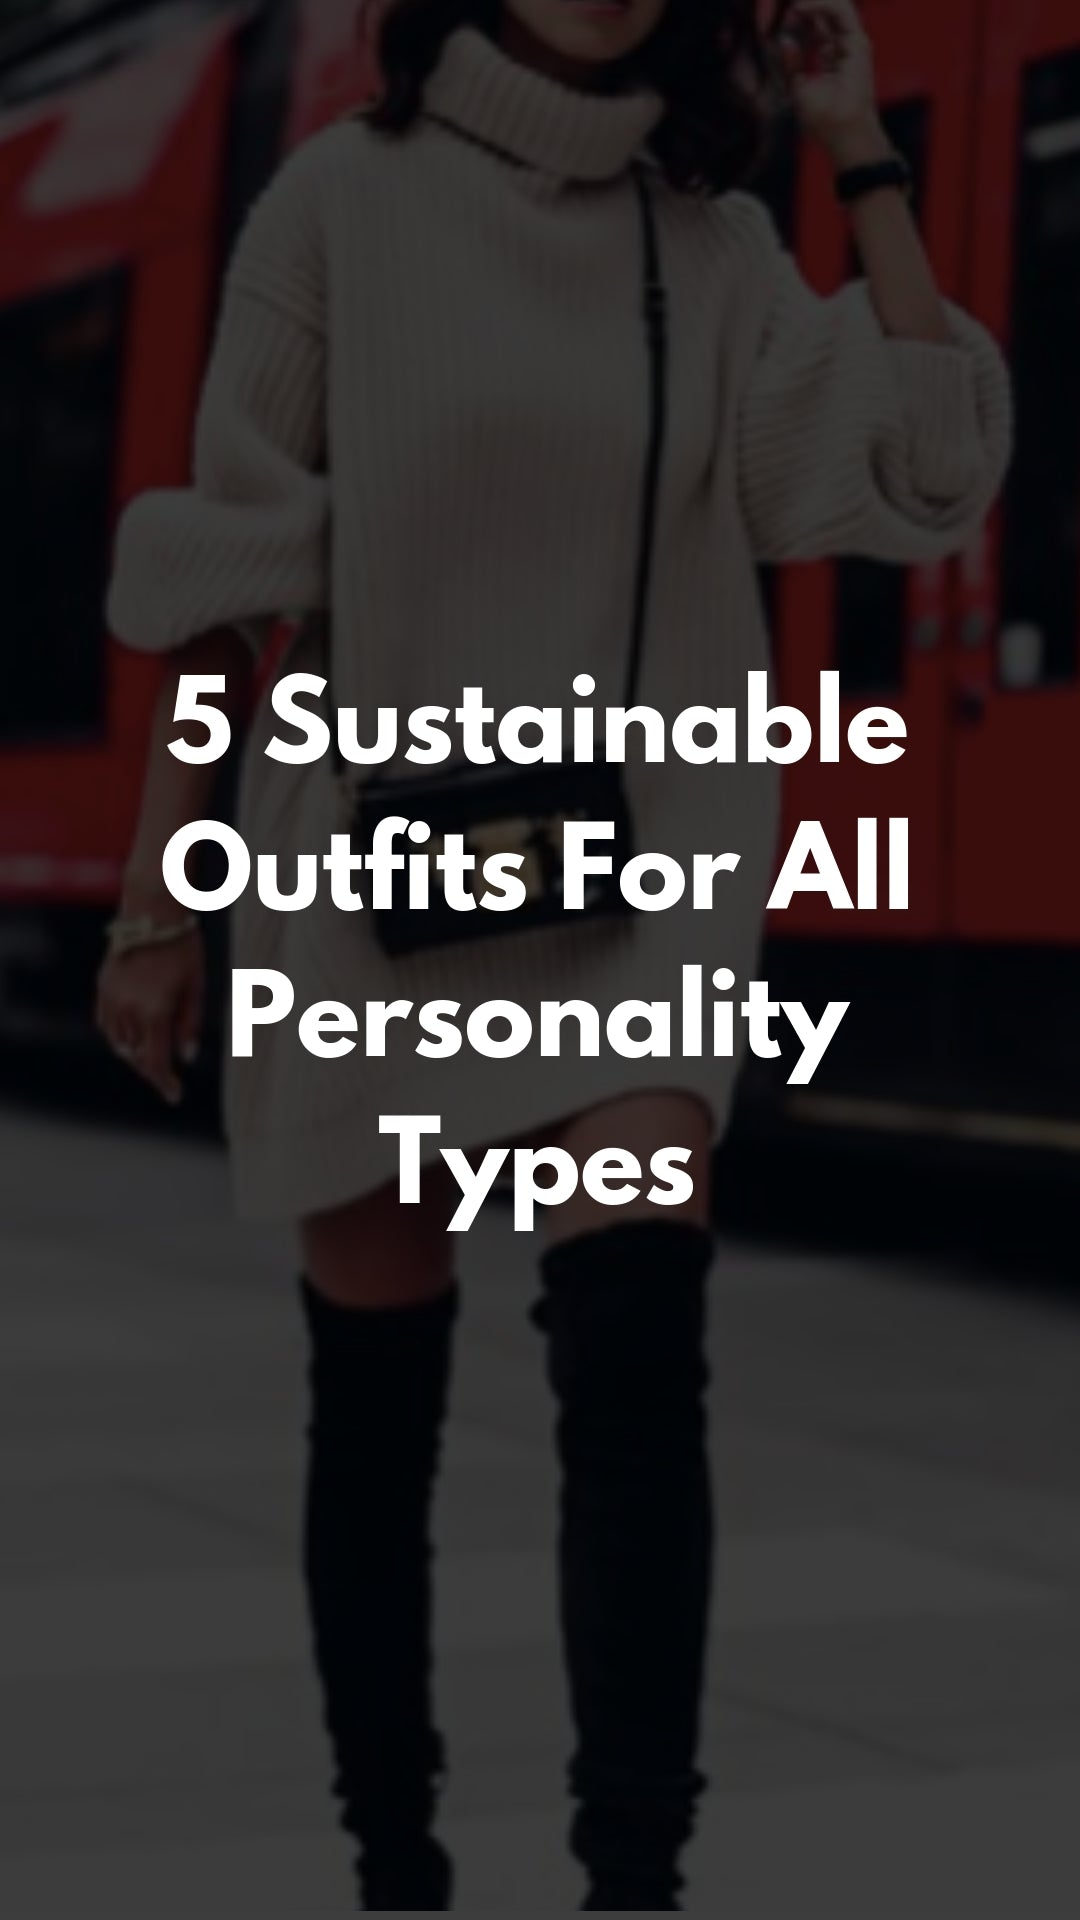 5 Sustainable Outfits For All Personality Types